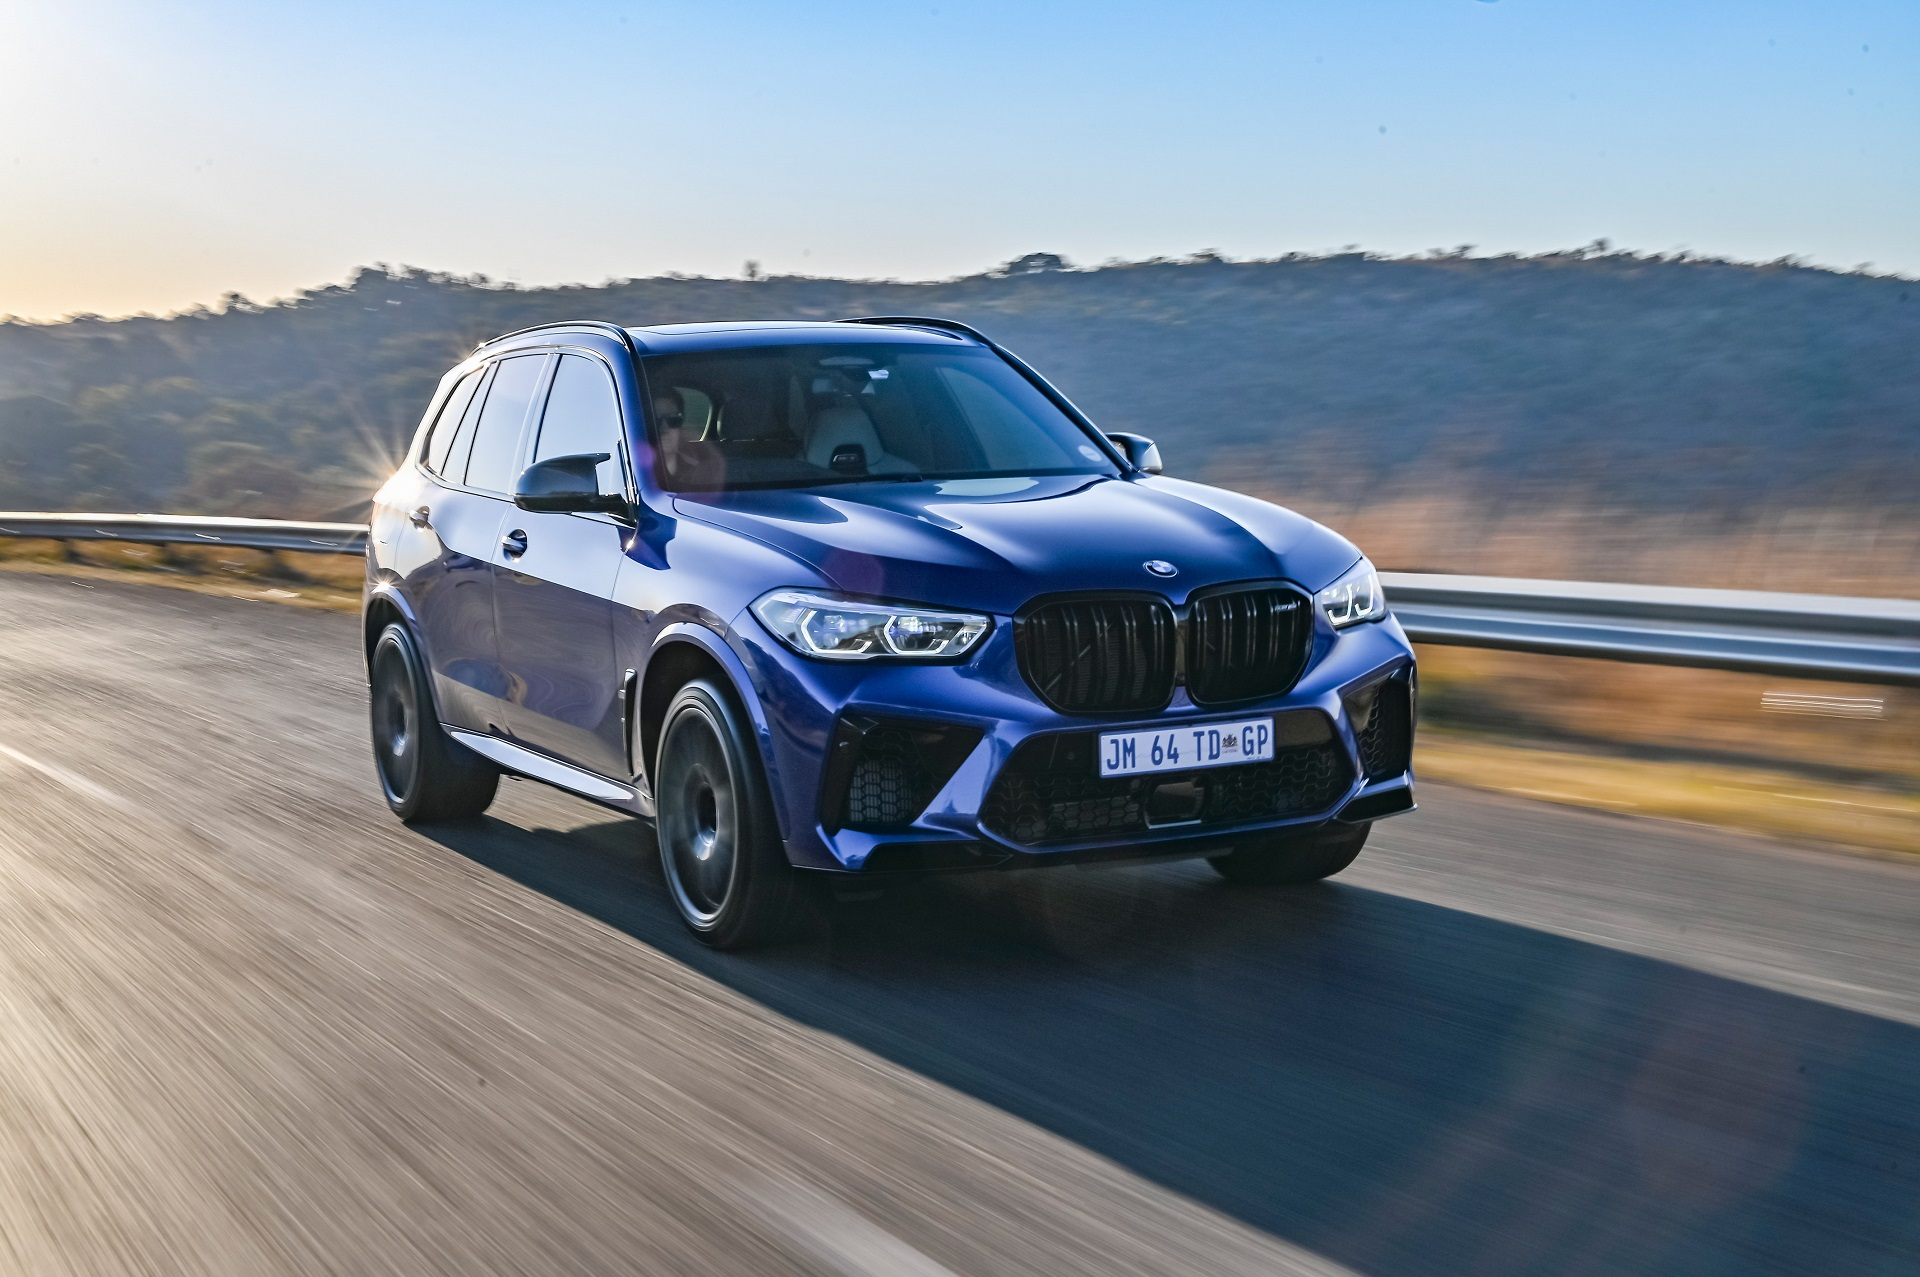 Bmw South Africa Unveils The Third Generation Bmw X5 M Competition And Bmw X6 M Competition Gottagged